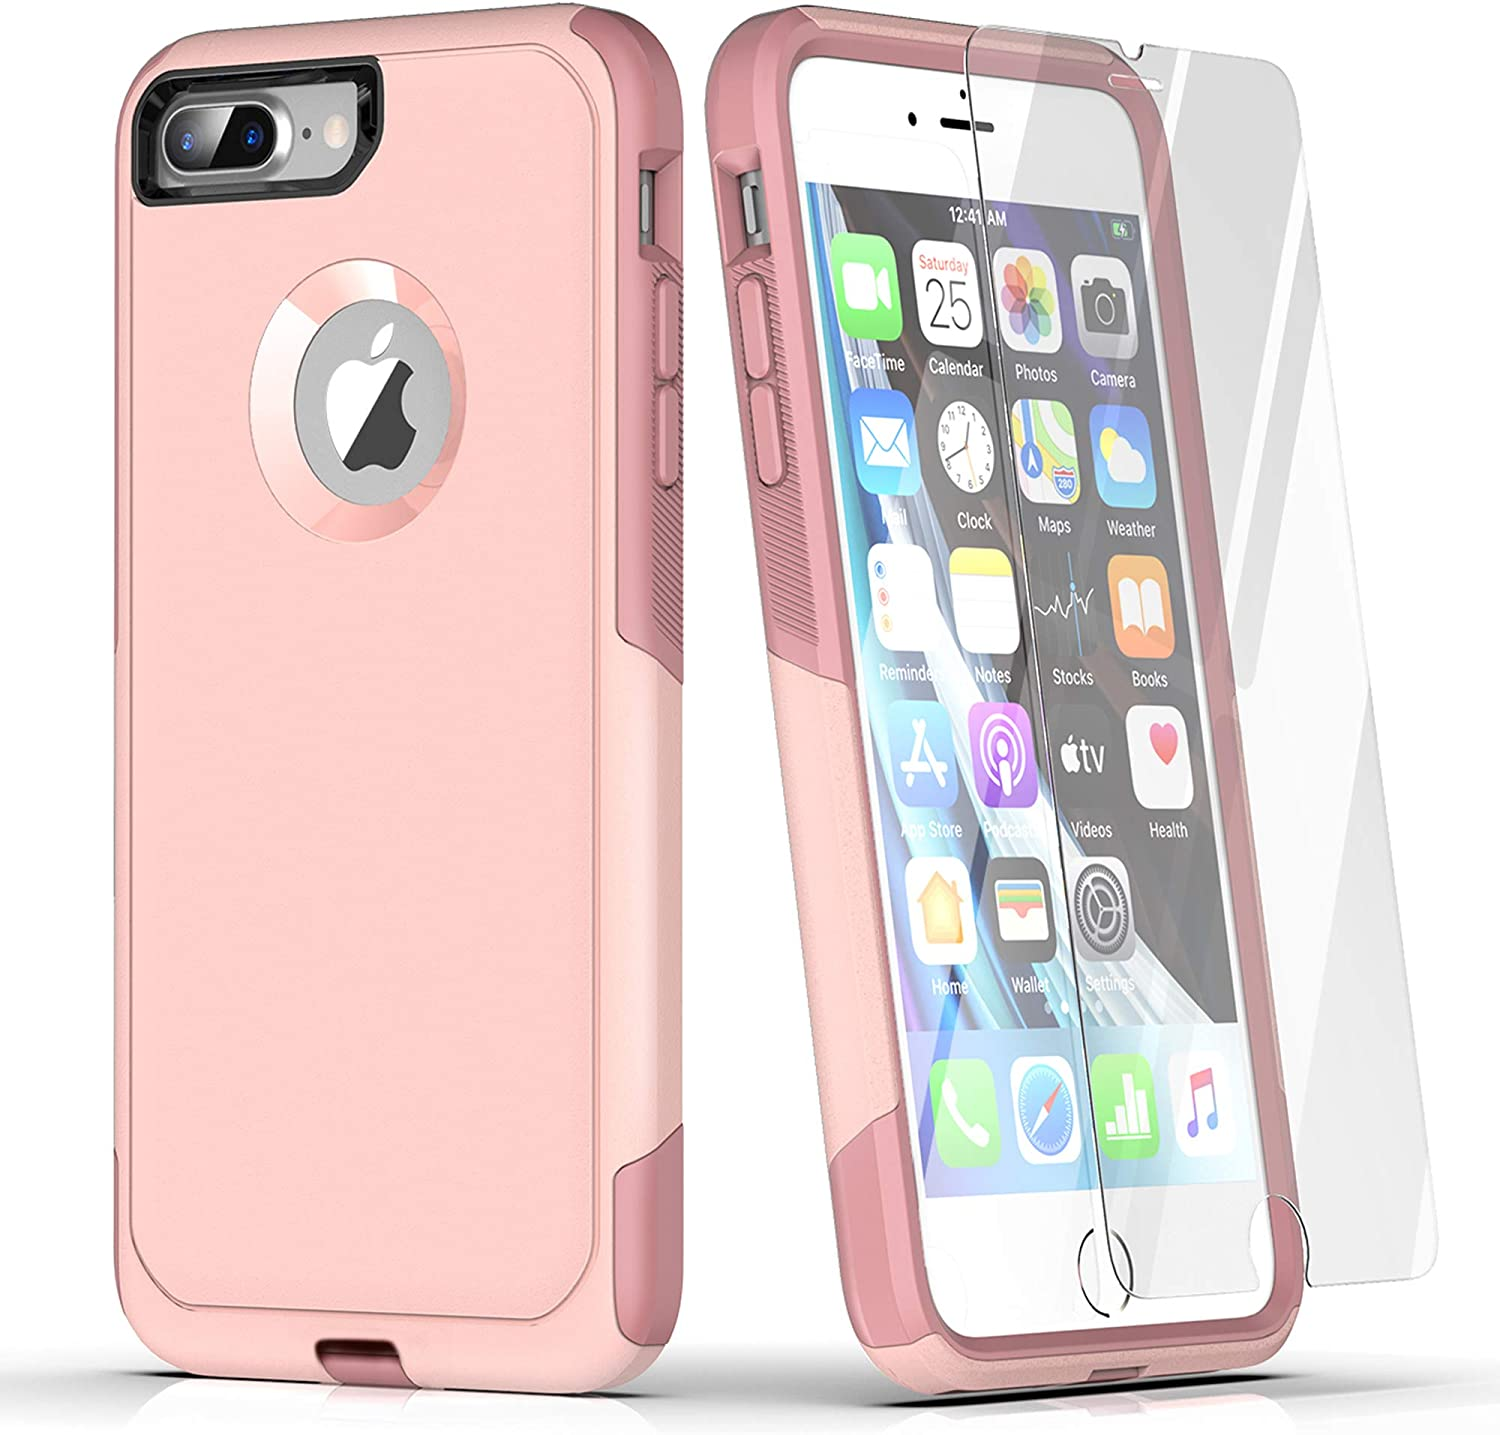 Laiture Phone Case with Screen Protector, Compatible with iPhone 8 Plus Case & iPhone 7 Plus Case – Pioneer Series Shockproof Double Layer Shell Protective Case(iPhone 7P/8P, Pink Blush)